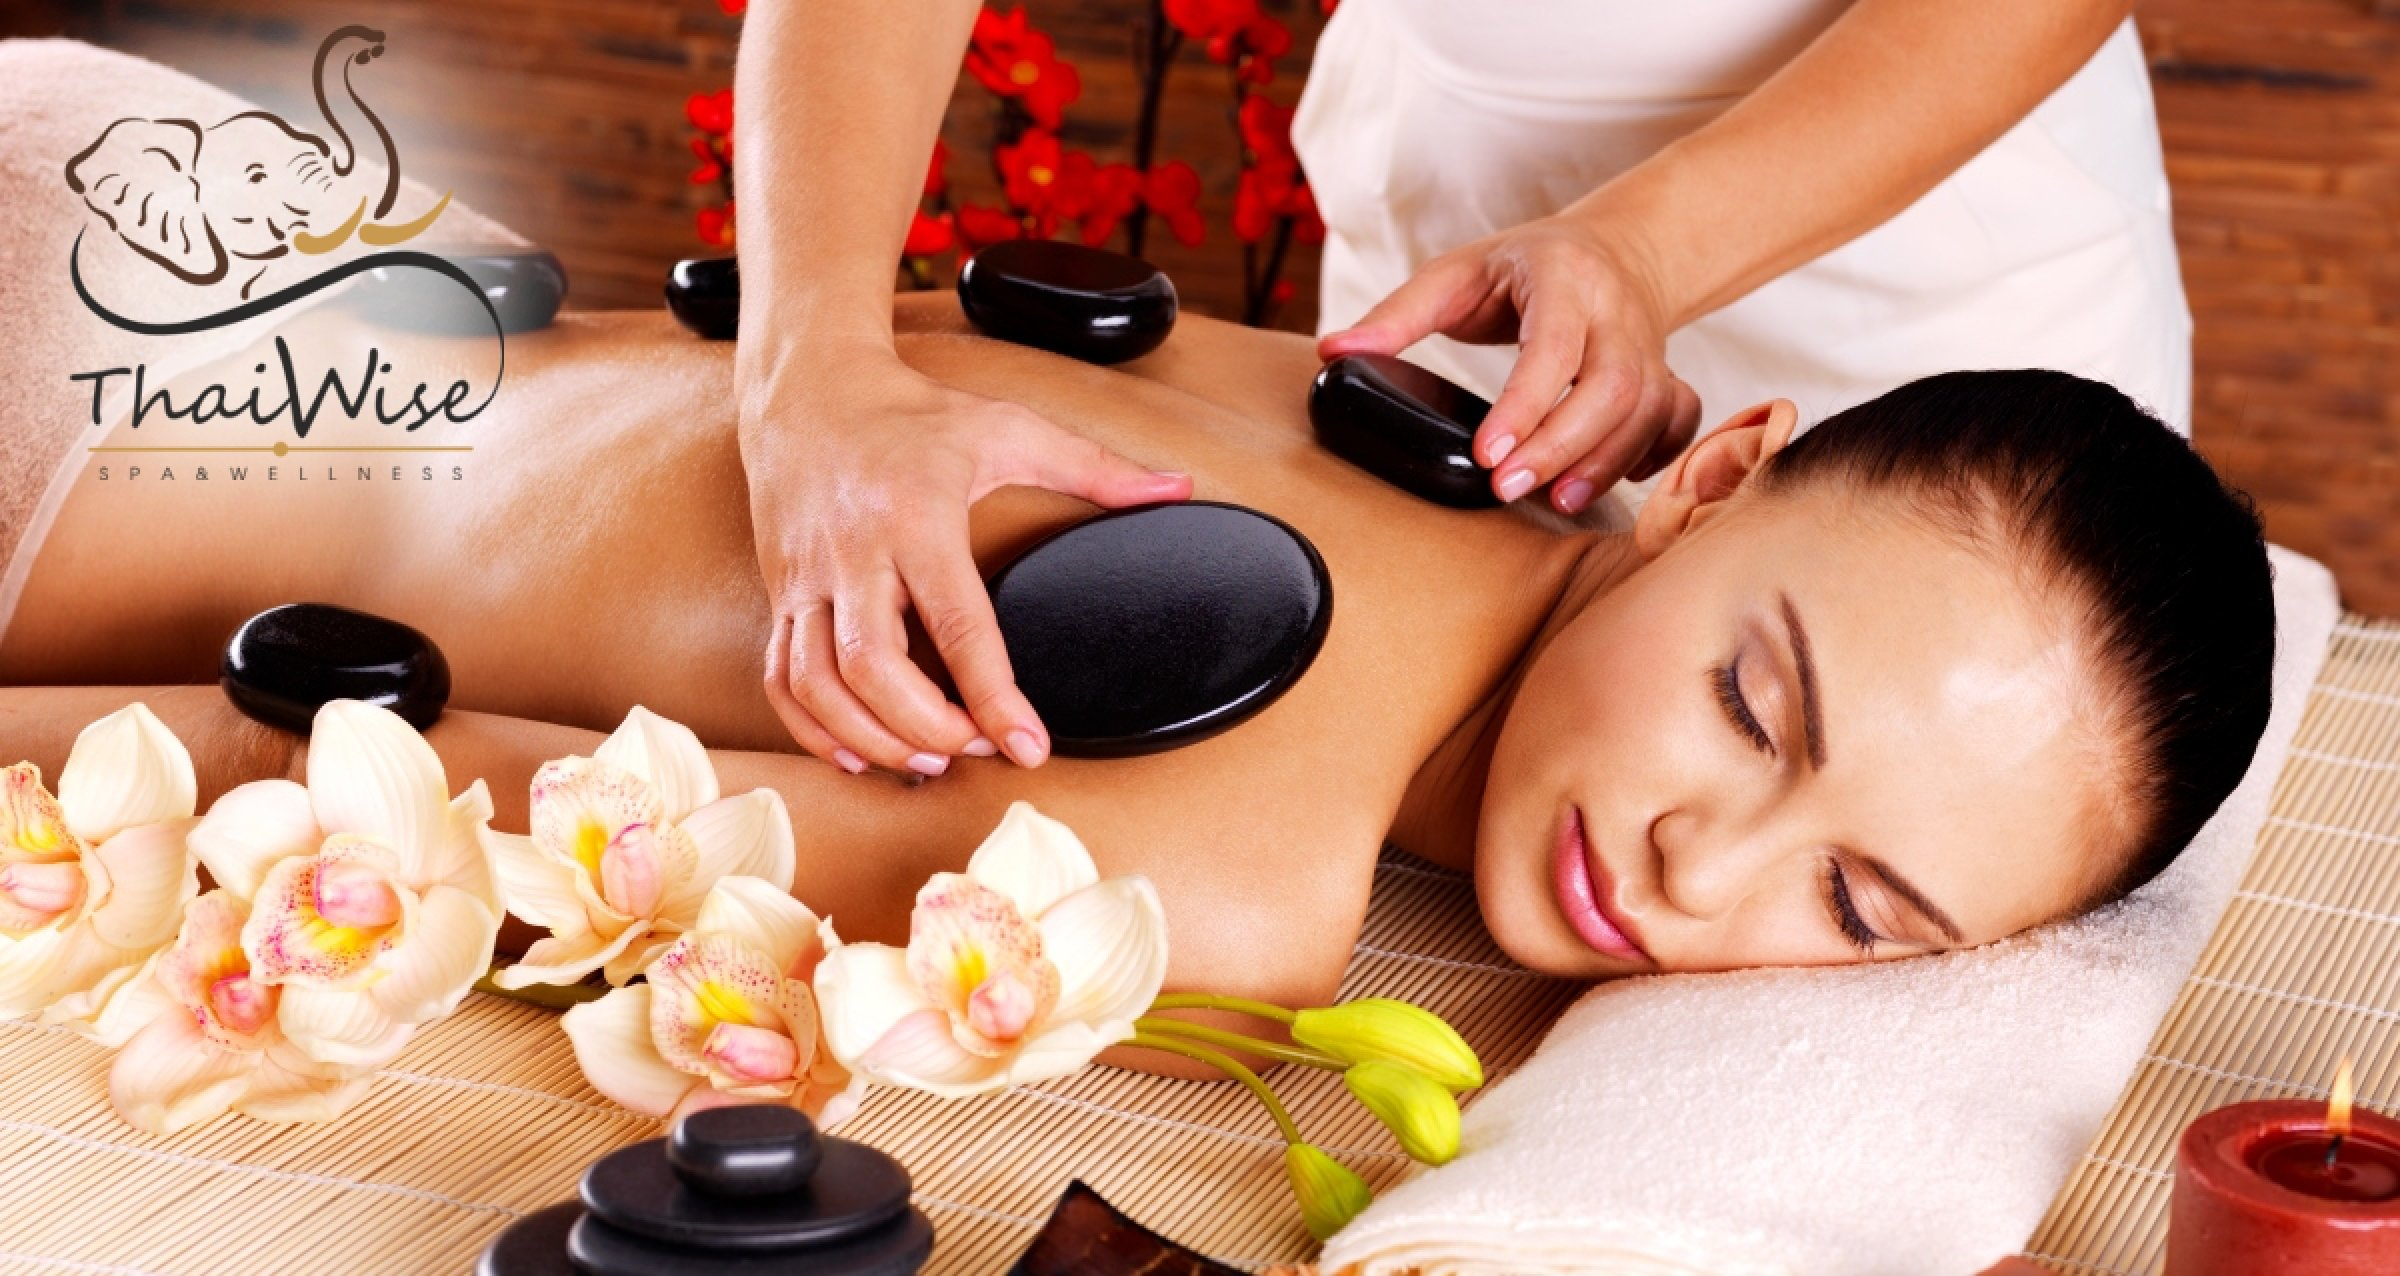 spa massage Orlando massage spa specializing a dozen types of therapeutic massages the spa orlando also features a full nail salon, waxing, facials, tanning and more.